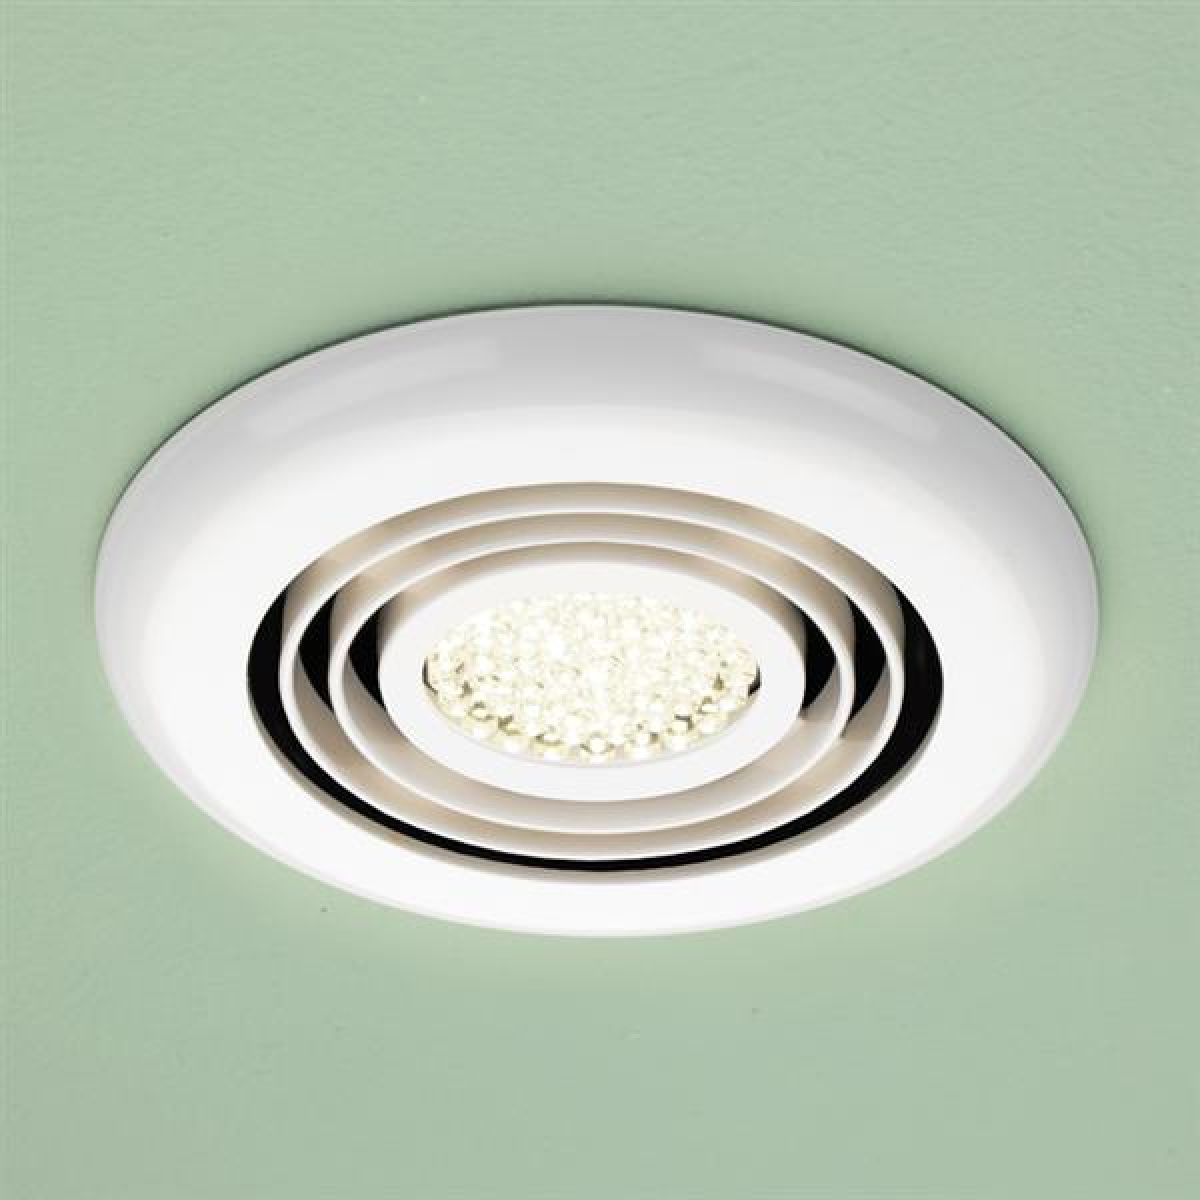 HiB Turbo Warm White LED Inline Bathroom Extractor Fan in White